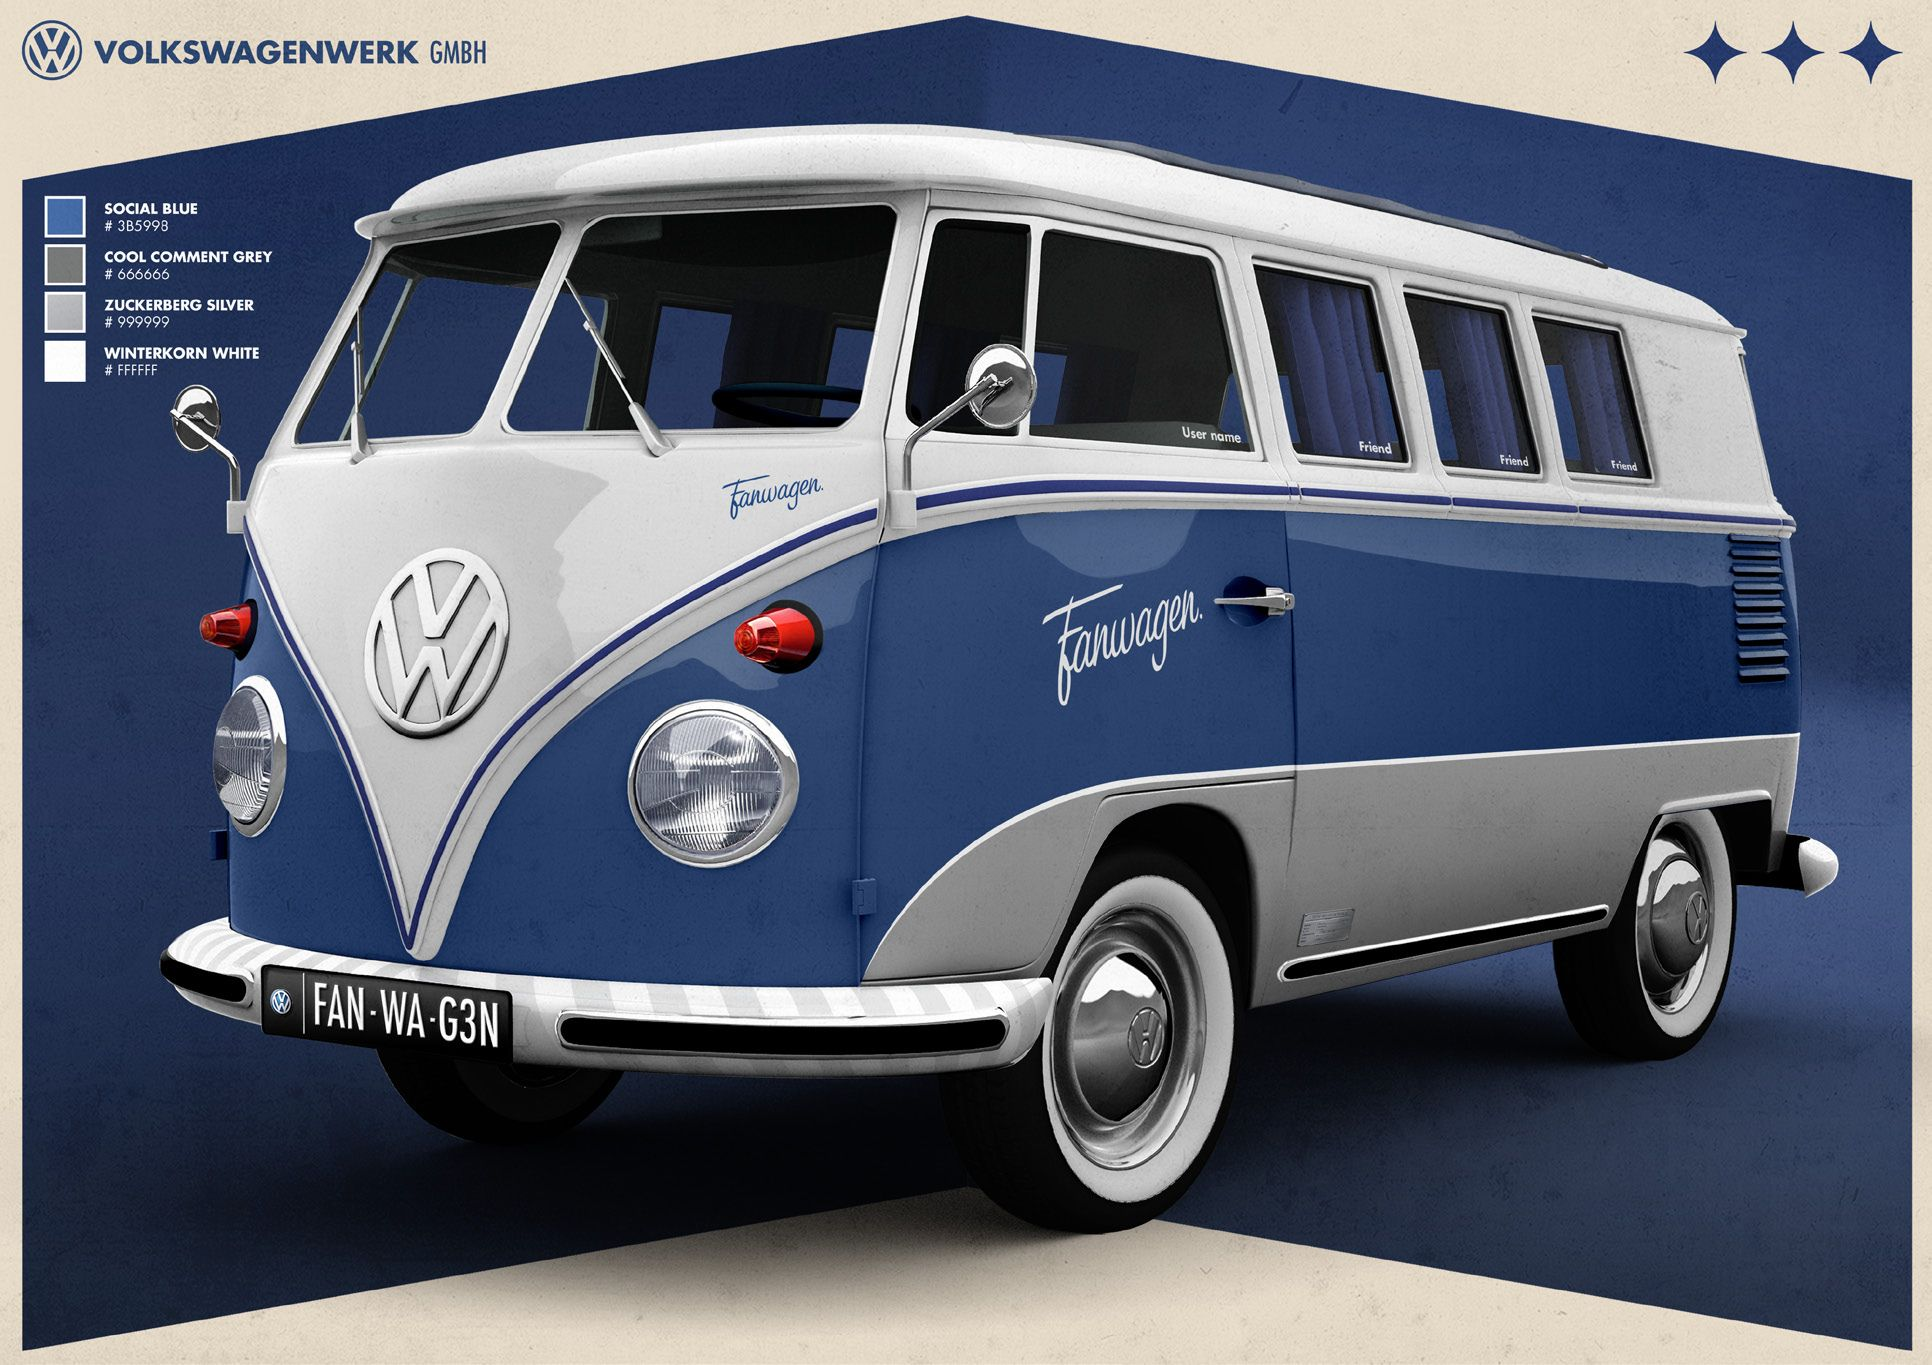 vw camper off for a pinterest this and started the point original bay bus working camperbus taos our new jumping volkswagen scheme interior ve i color we was pin on